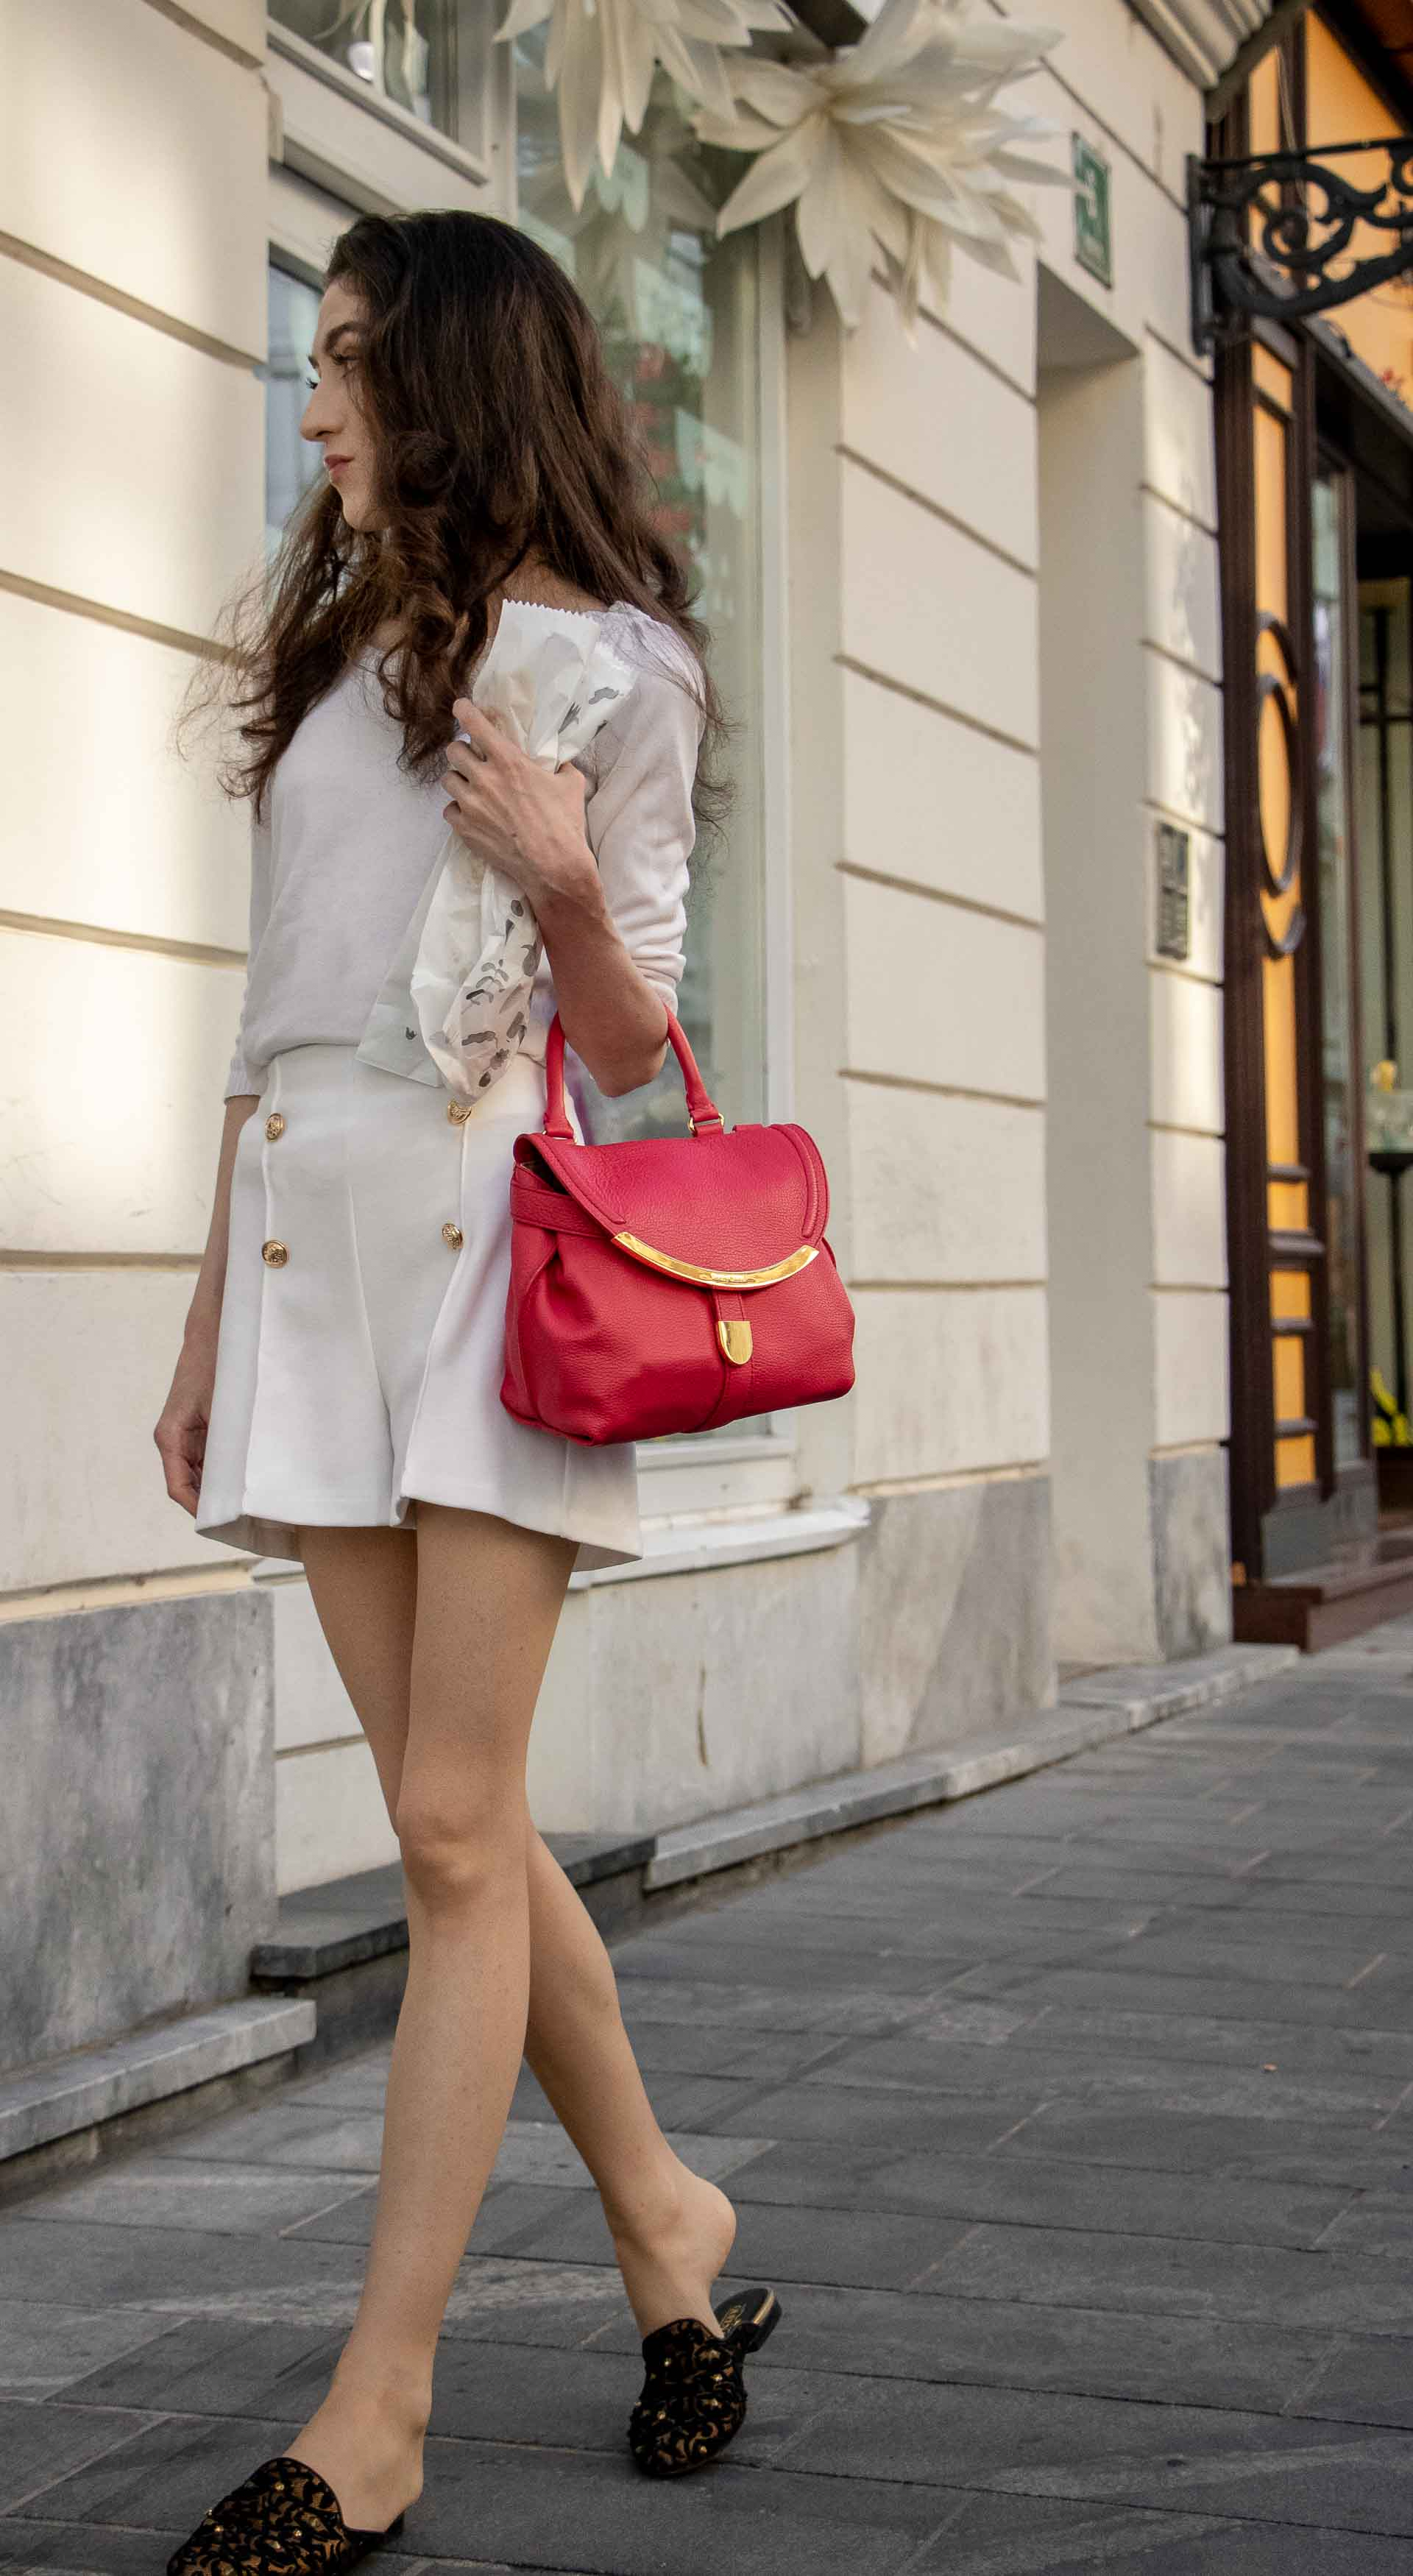 Beautiful Slovenian Fashion Blogger Veronika Lipar of Brunette from Wall dressed in all in white outfit, a white sweater, white tailored shorts, black flat slipper mules, pink top handle bag, a paper bag on the street in Ljubljana when it's hot